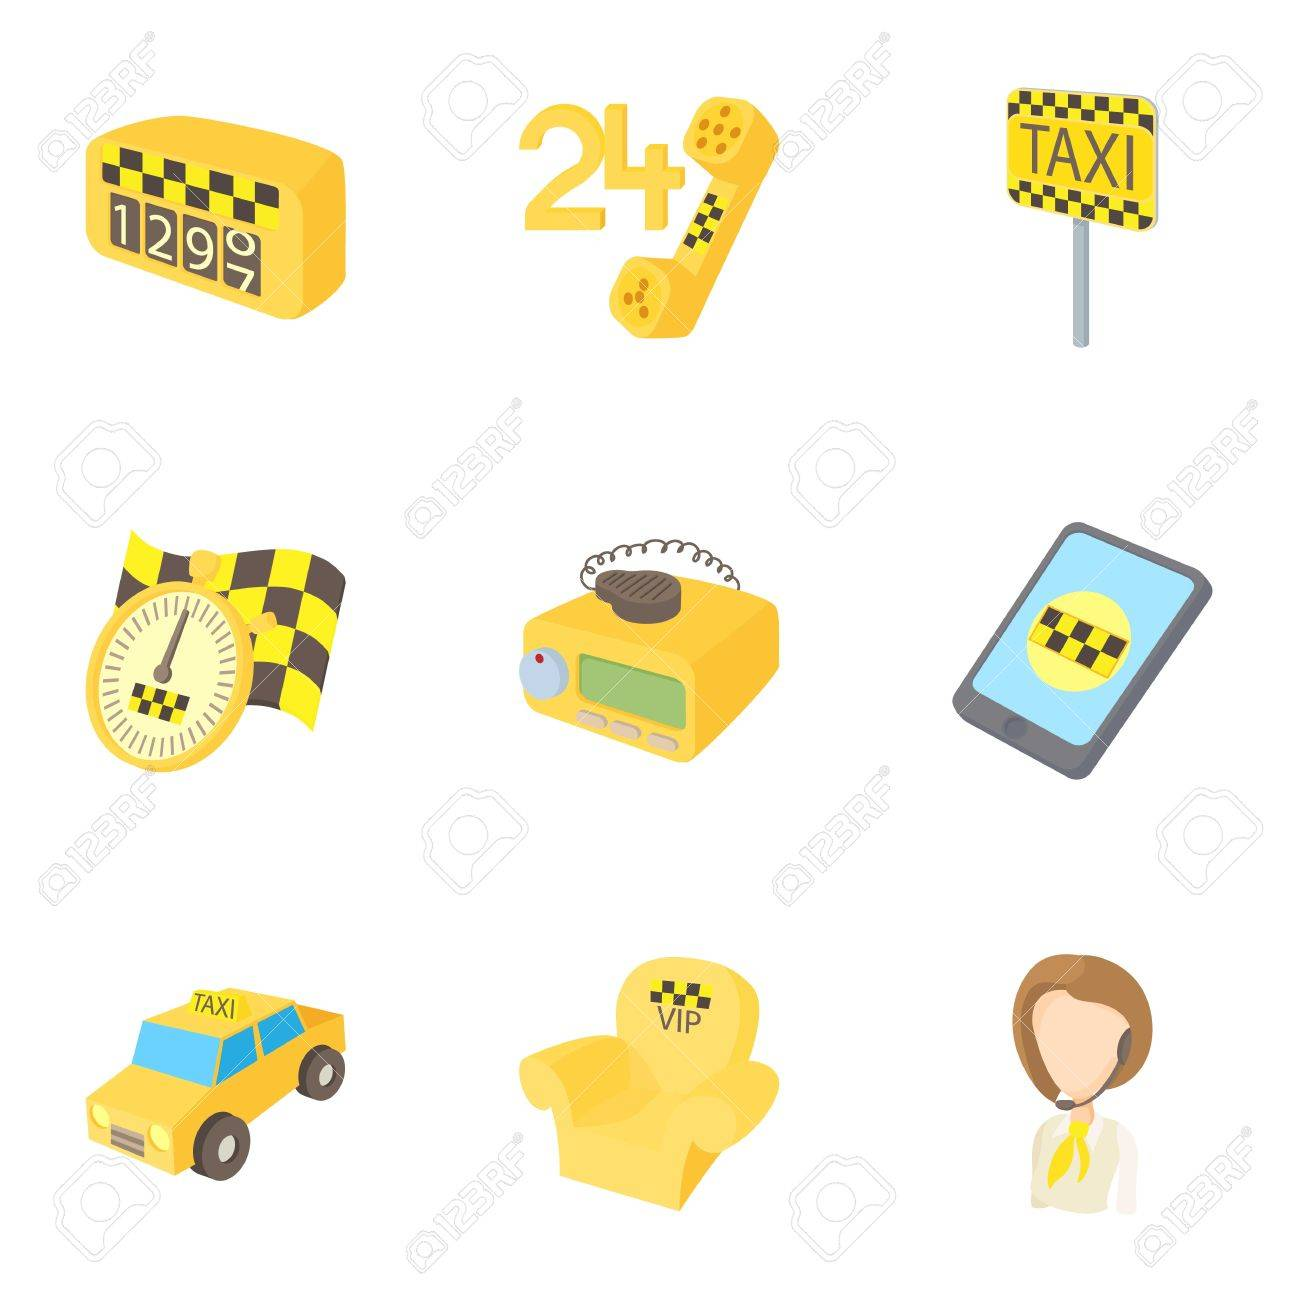 Taxi Icons Set Cartoon Illustration Of 9 Vector For Web Stock